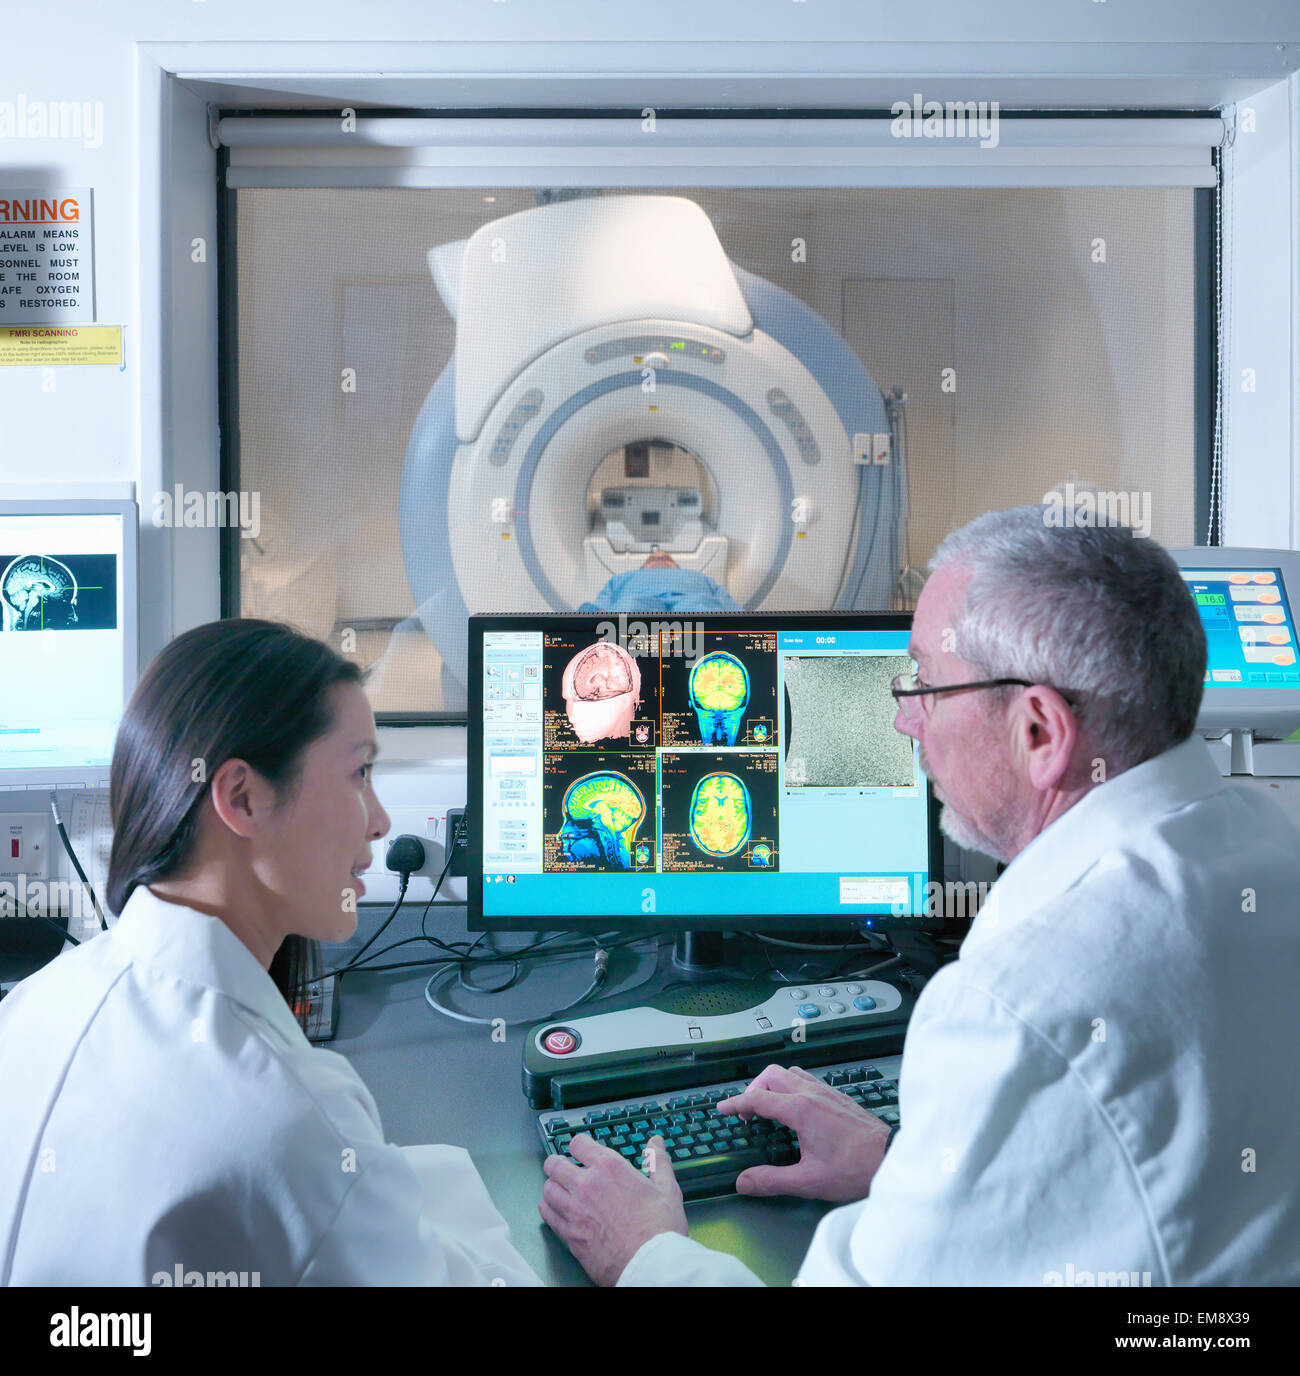 Doctor and scientist with Magnetic Resonance Imaging (MRI) 3 Tesla twin speed scanner - Stock Image